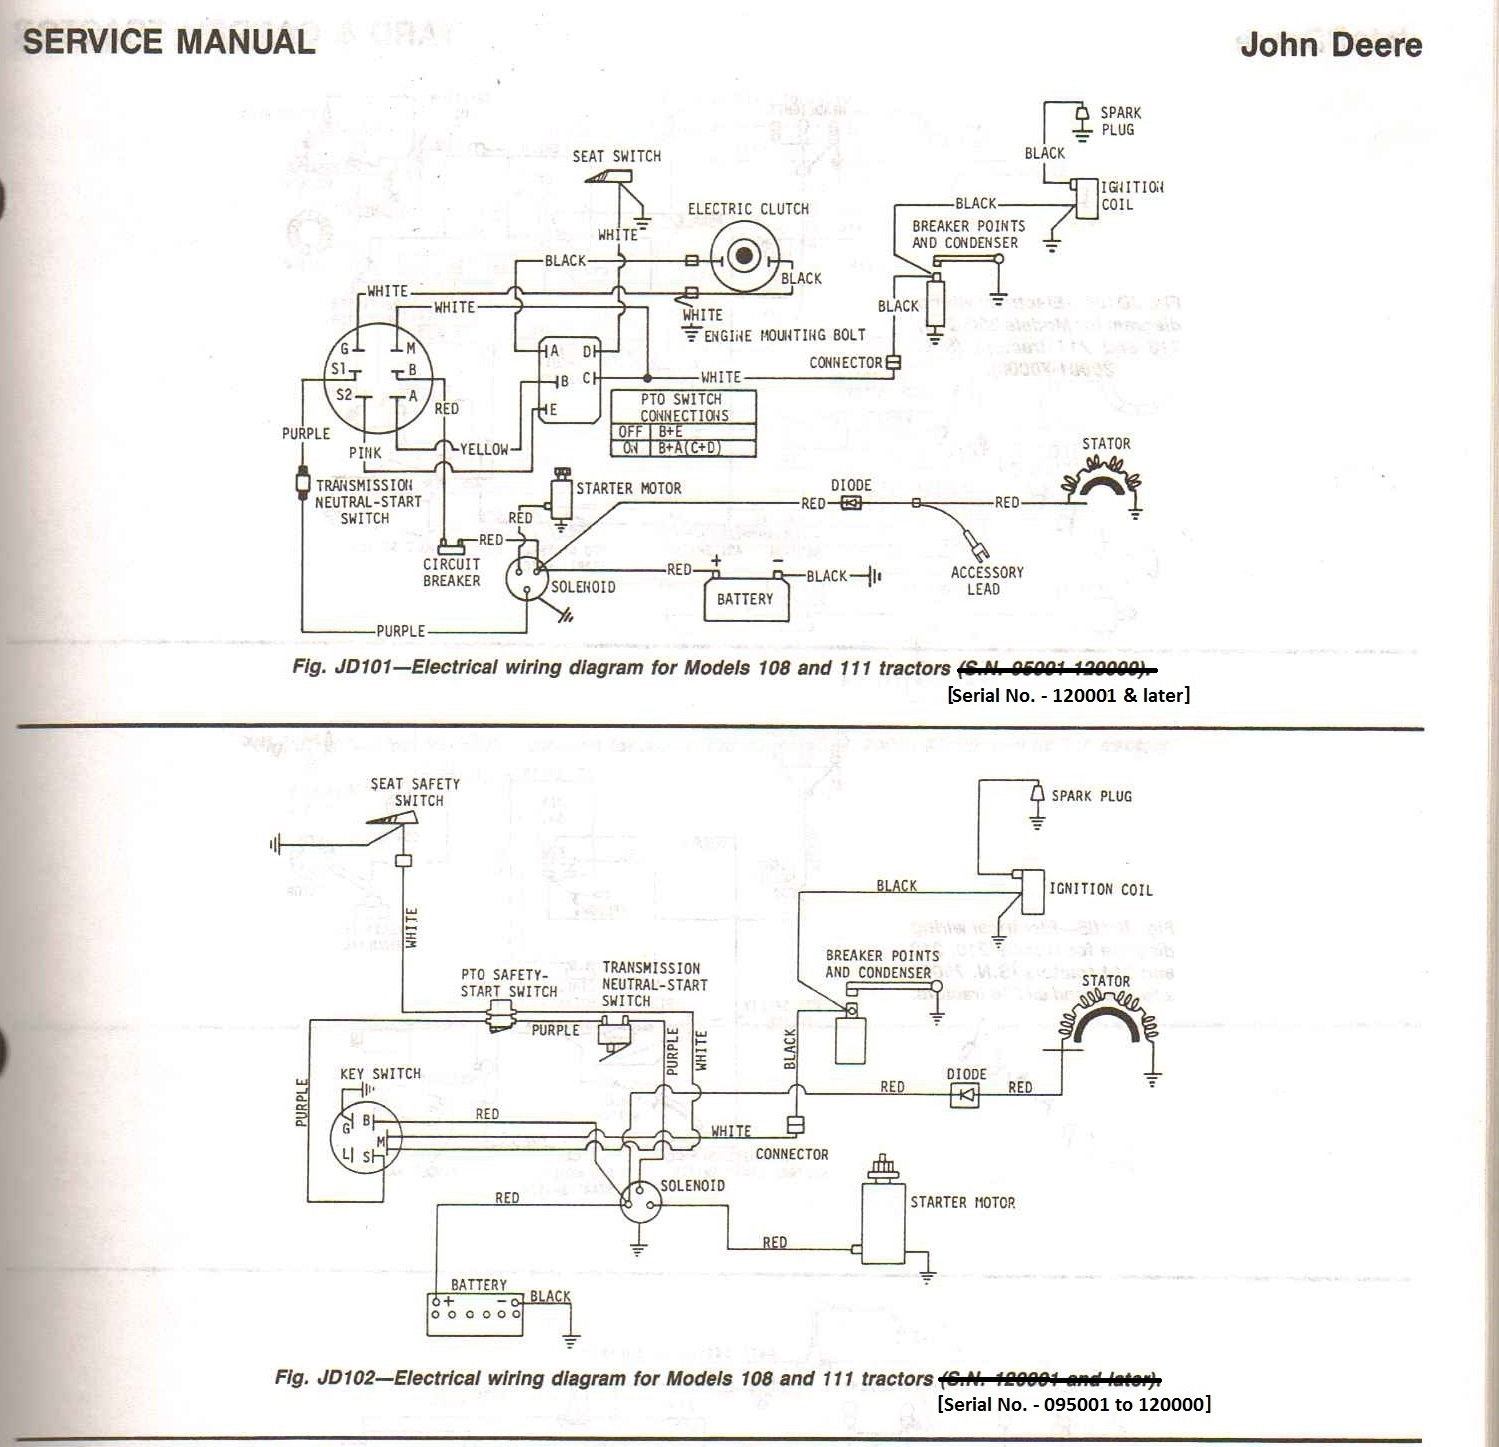 John Deere 116 Wiring Diagram from www.mytractorforum.com